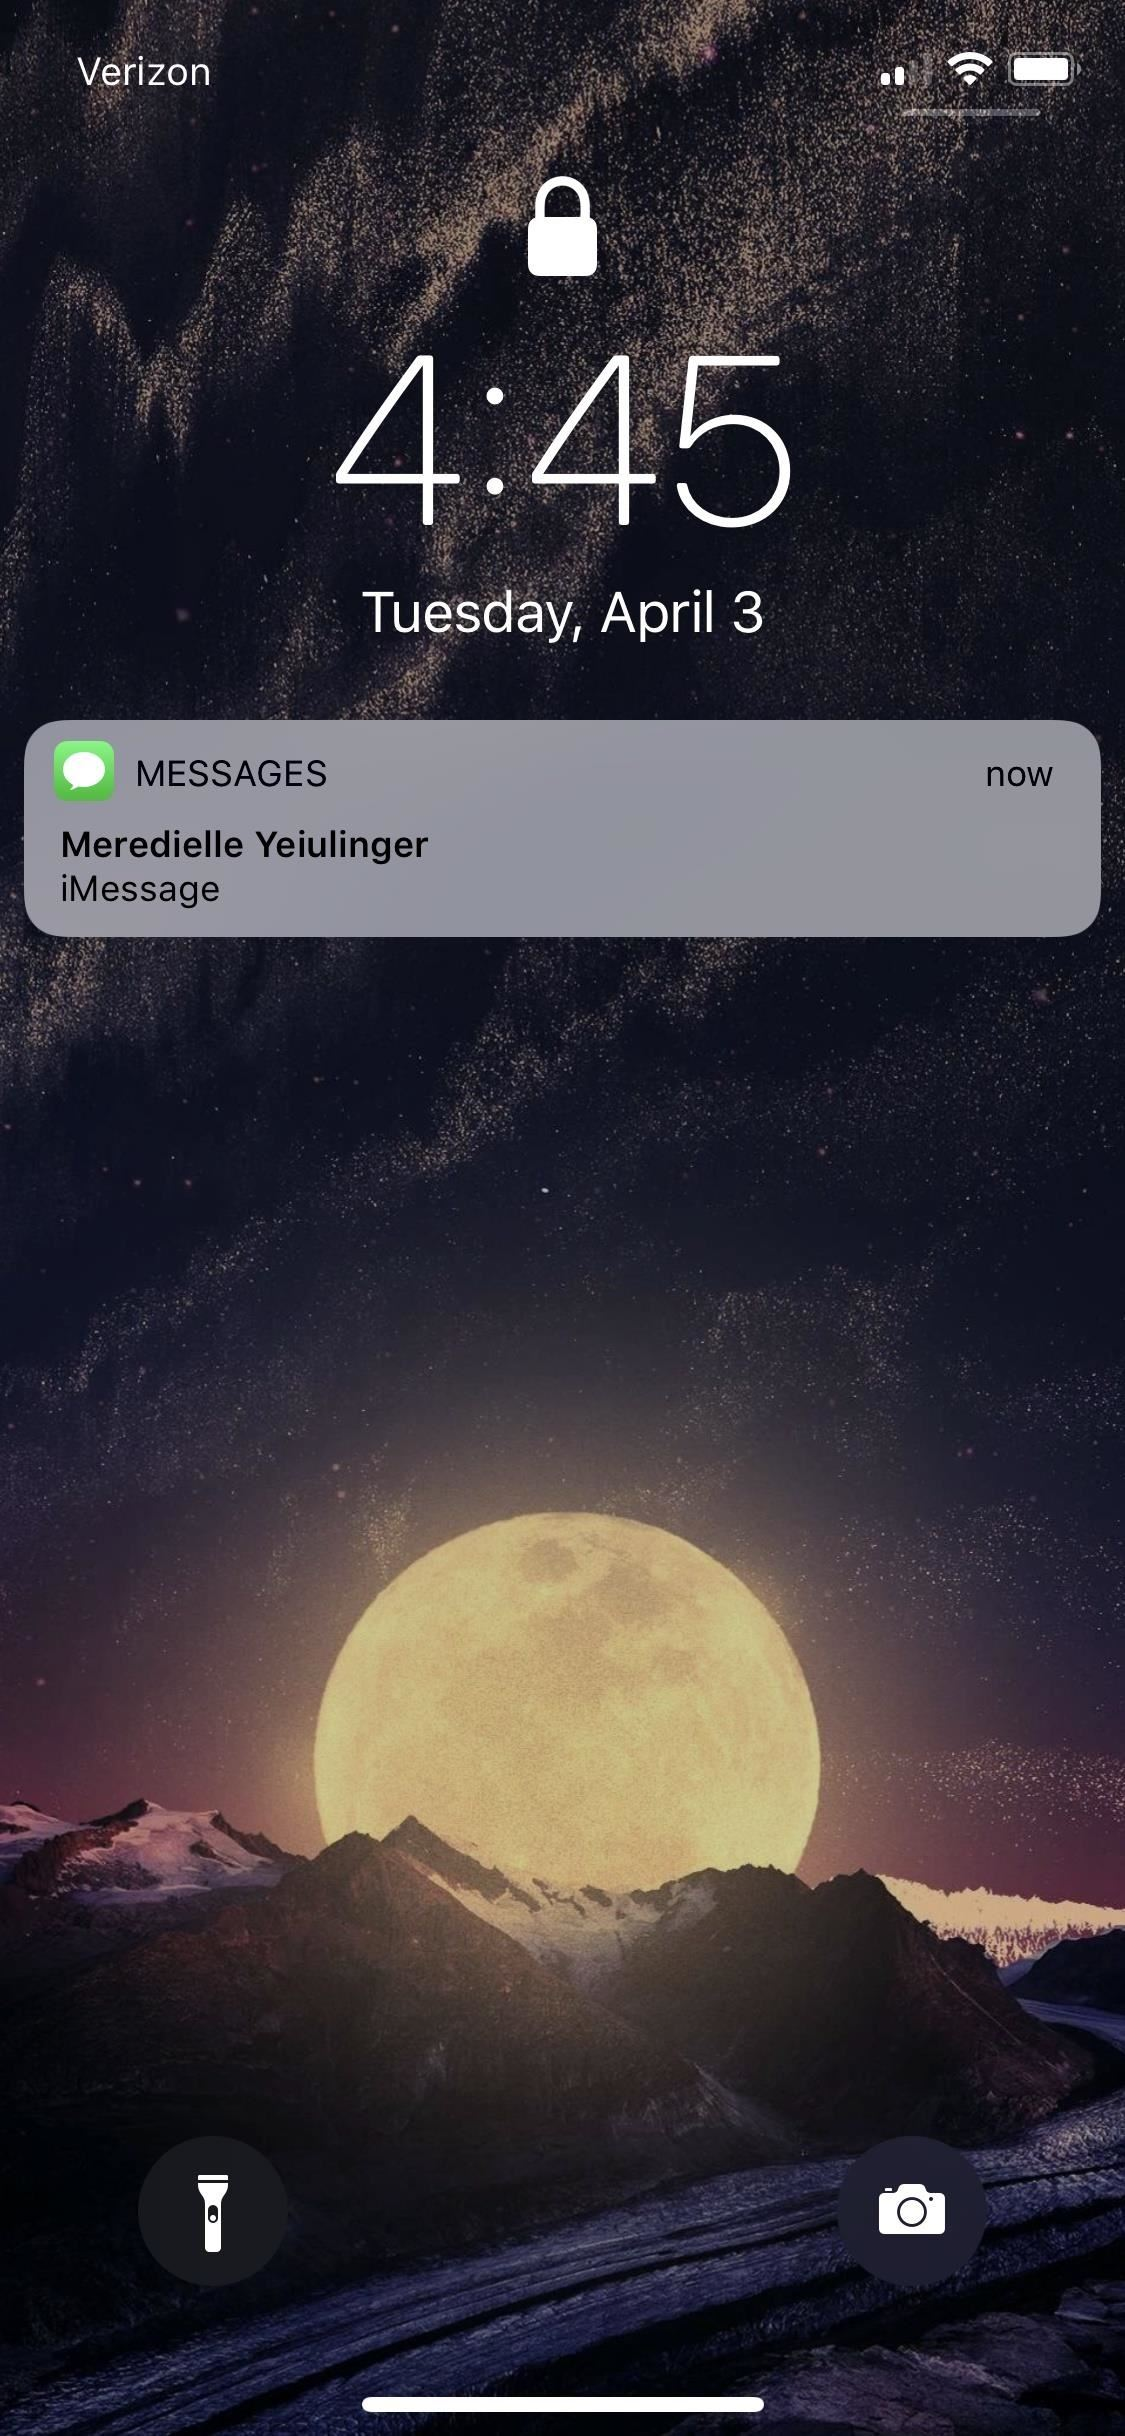 iOS Security: How to Keep Private Messages on Your iPhone's Lock Screen for Your Eyes Only